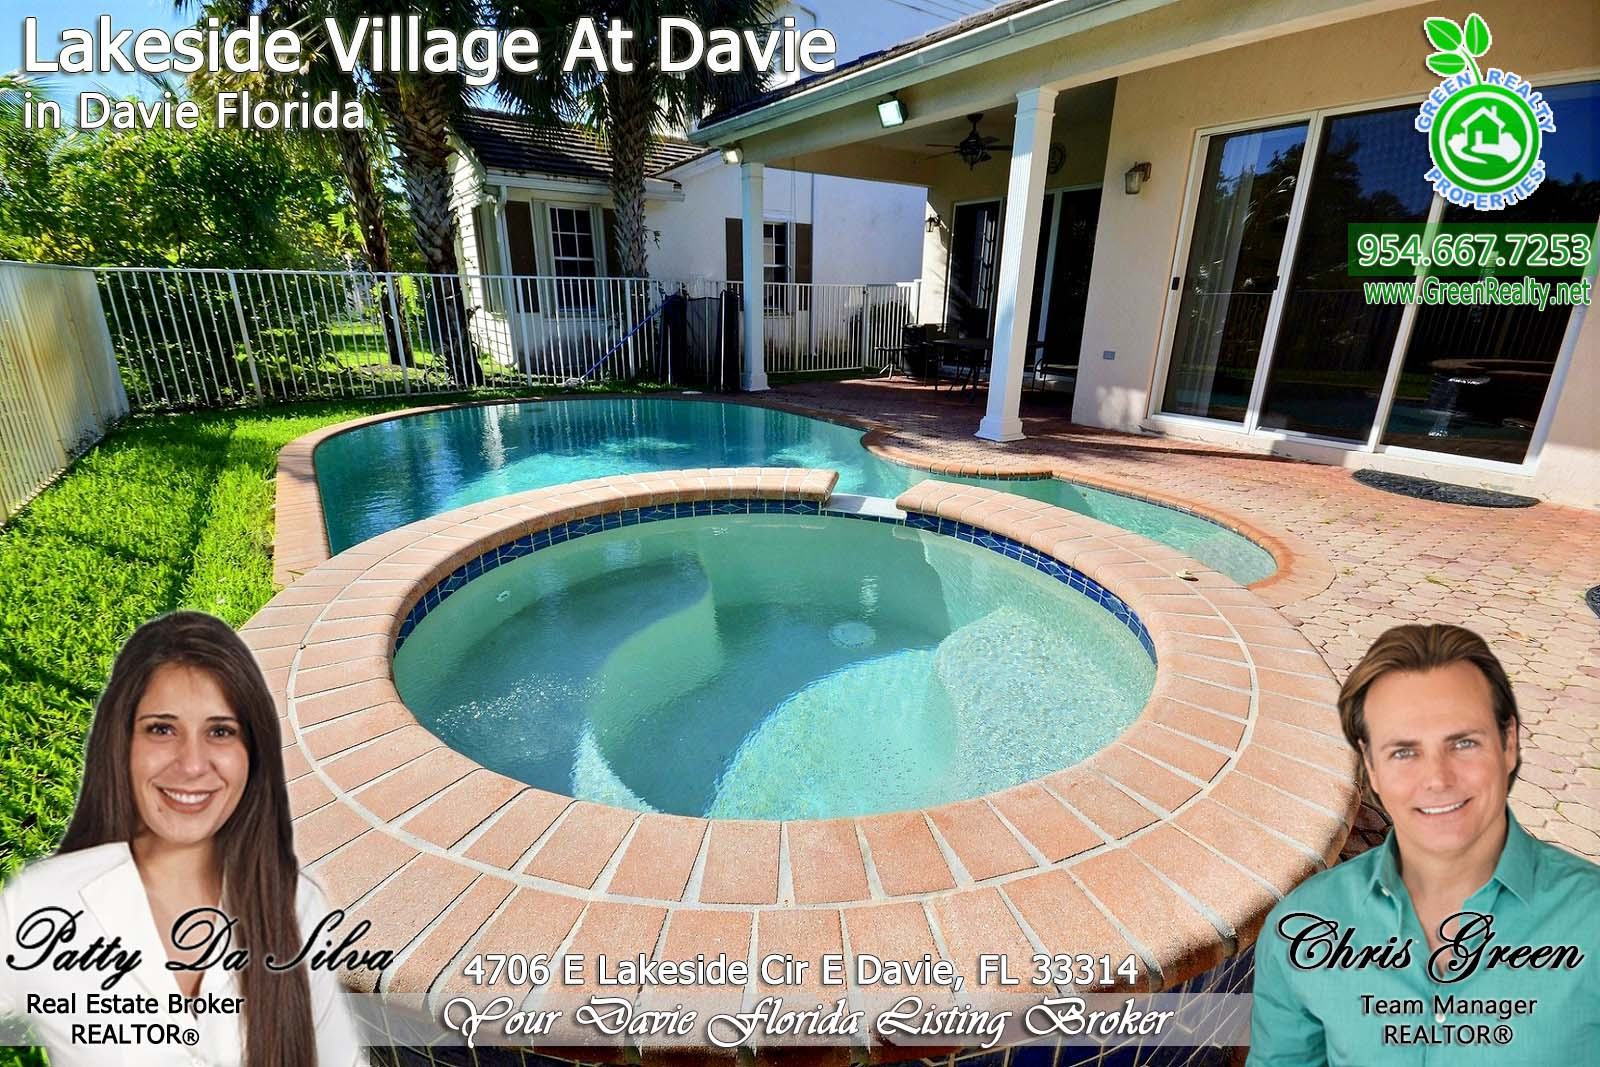 35 Davie Real Estate Brokers